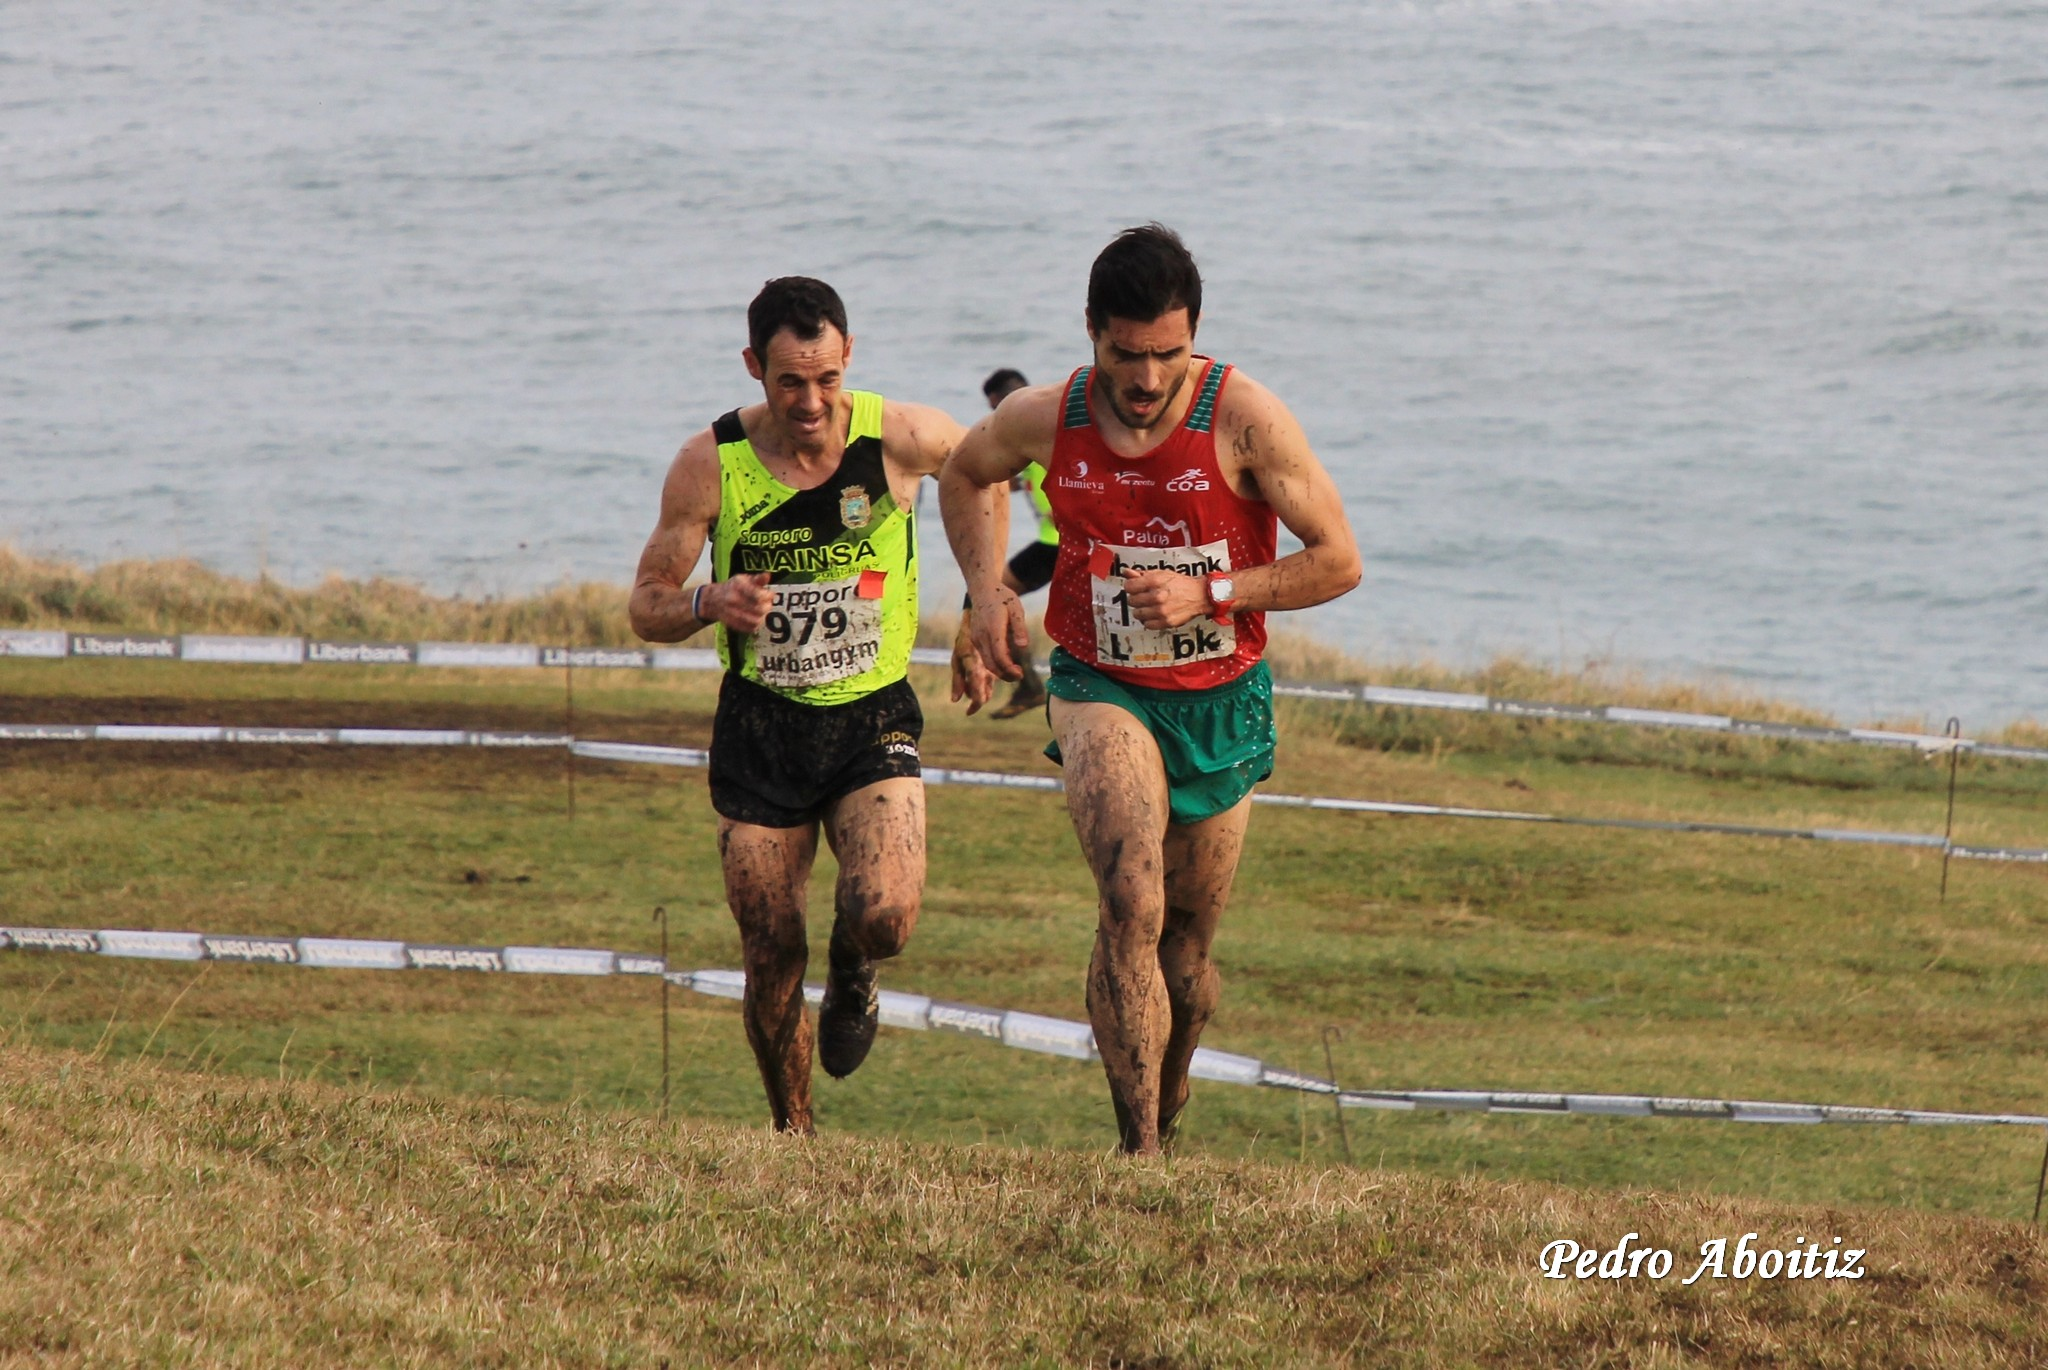 2019-11-24 XC Cross At. España de Cueto 993